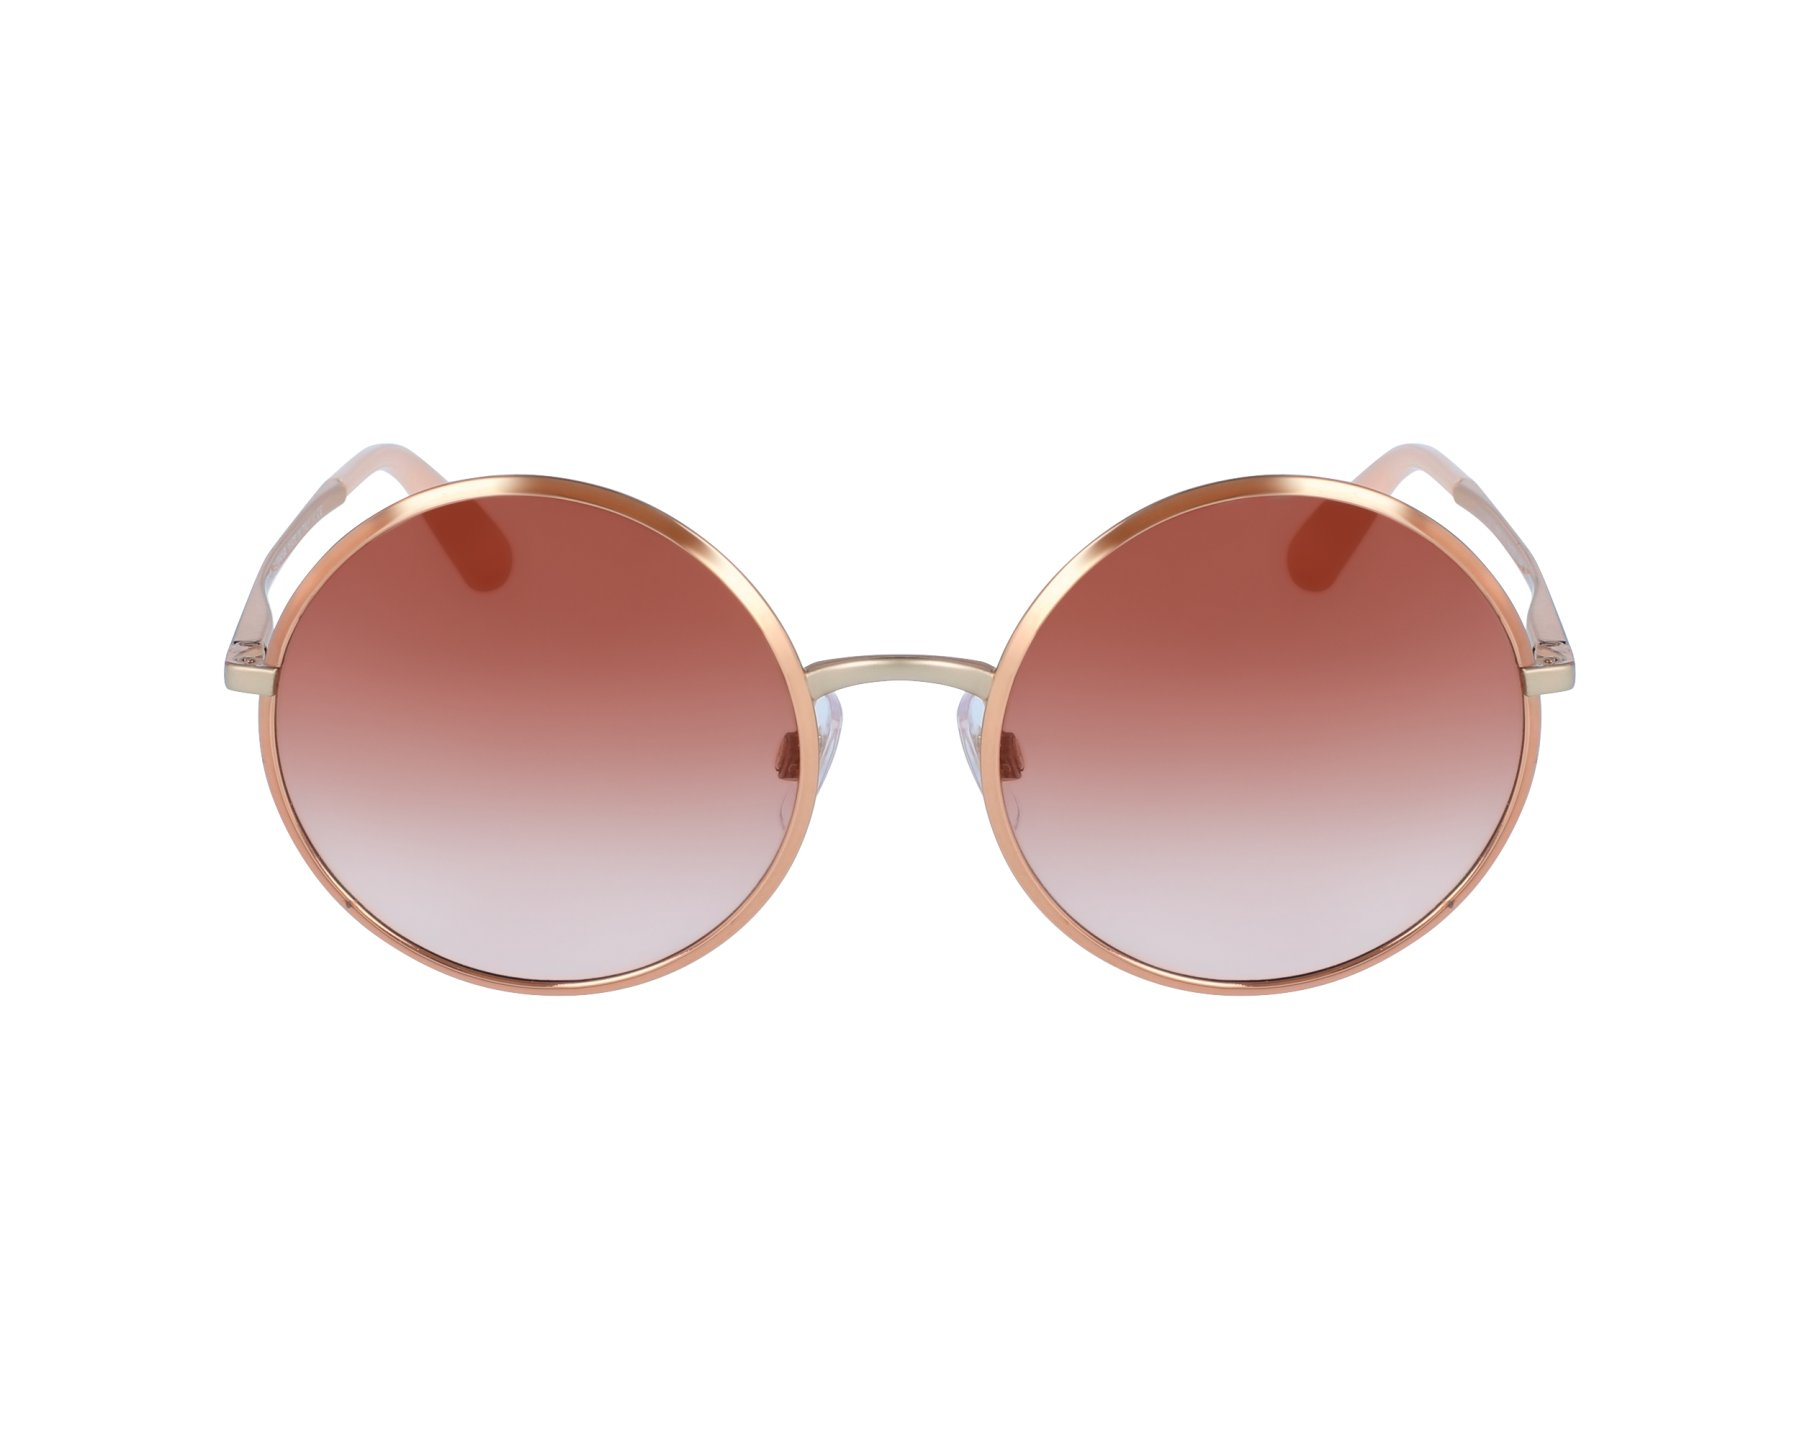 2448a745ef7 Sunglasses Dolce   Gabbana DG-2155 129313 56-20 Rose gold profile view